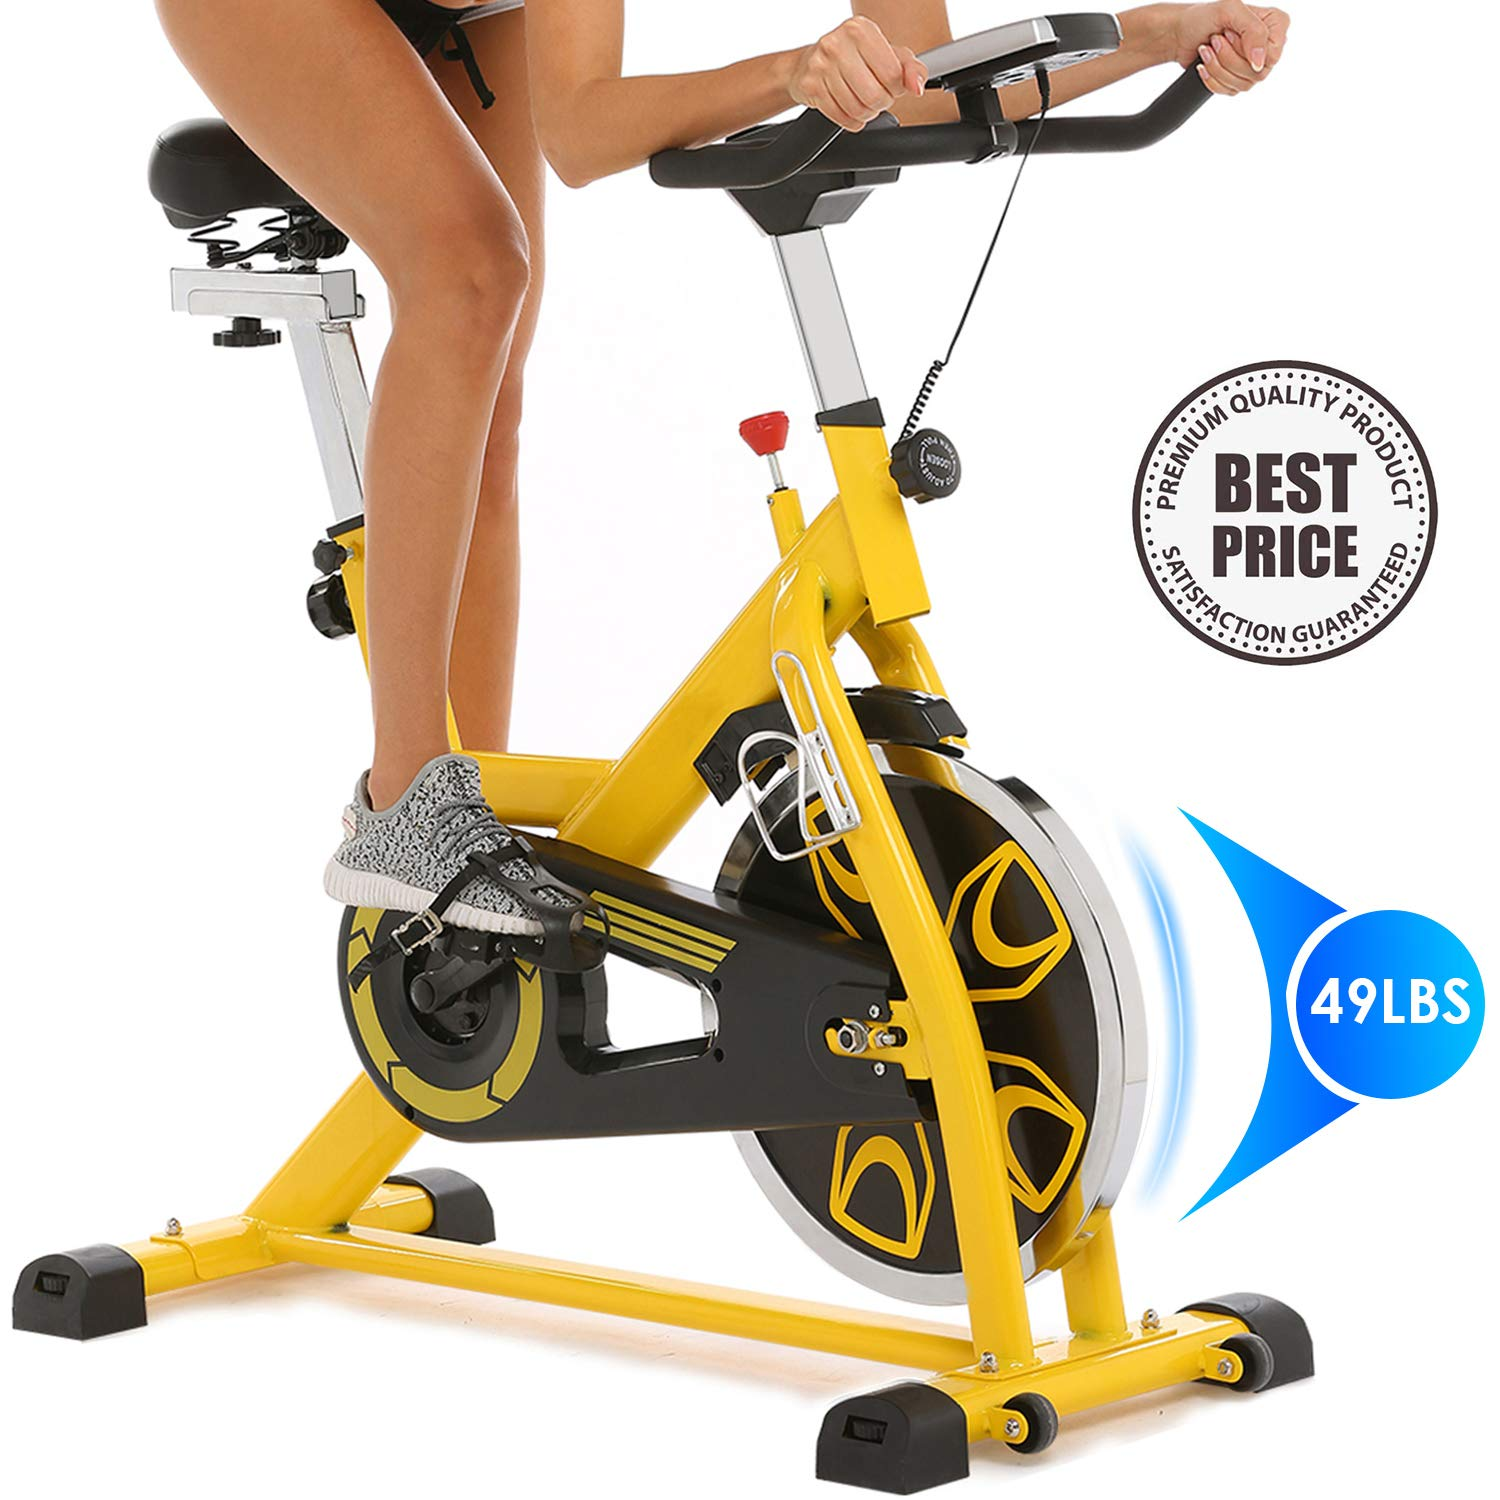 ANCHEER Indoor Cycling Bike 49LBS Flywheel Stationary Exercise Bike, Portable with Adjustable Resistance Handlebar, Exercise Bike for Adults or Seniors with LED Monitor Mount